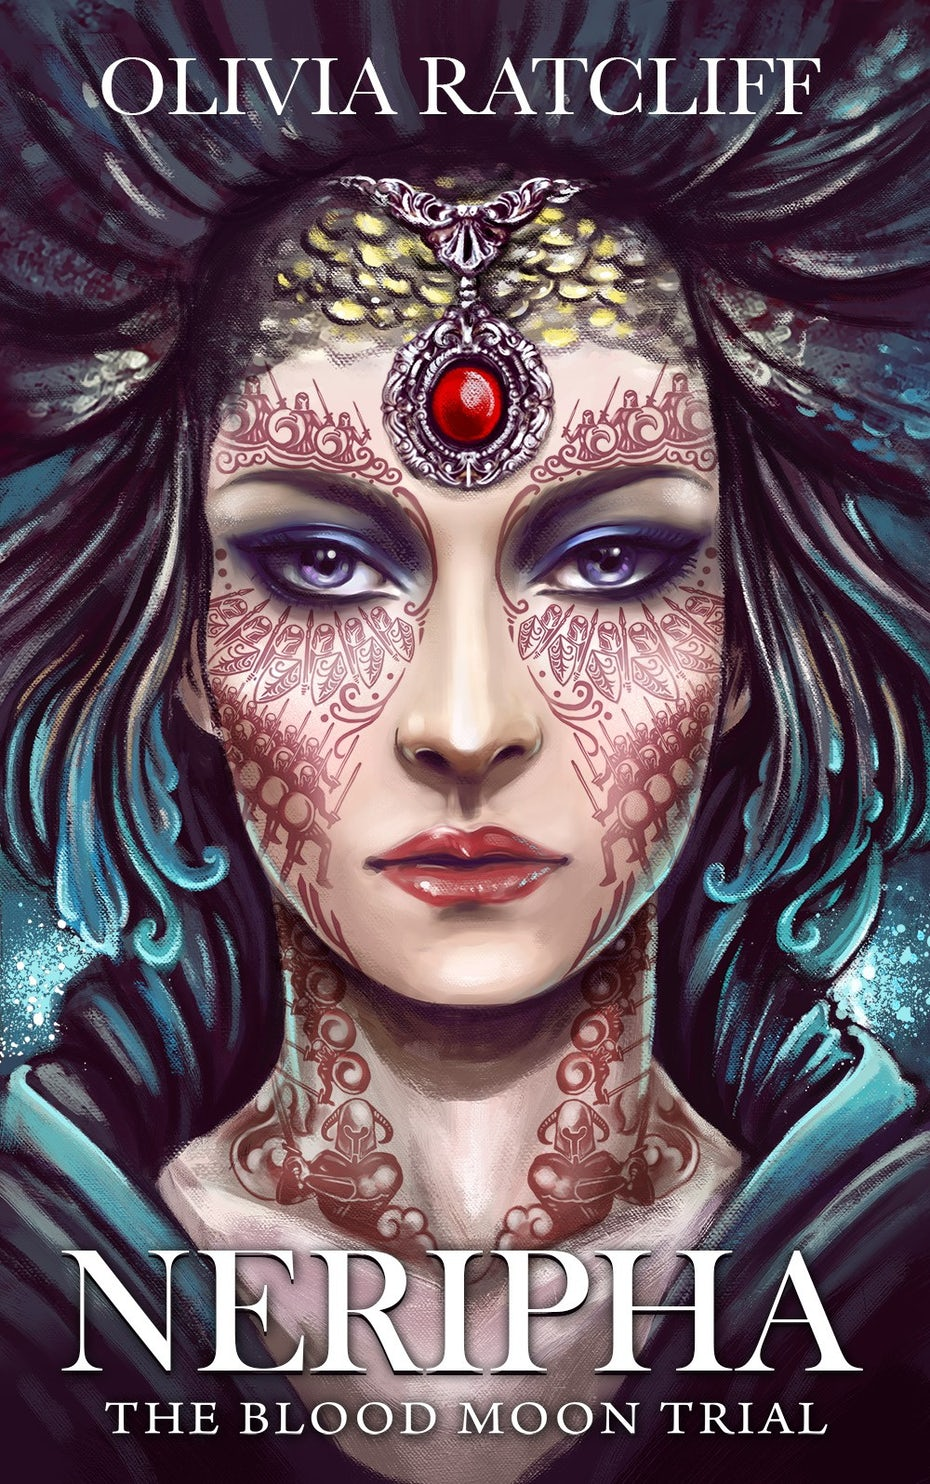 A portrait illustration of a fantasy empress for a book cover